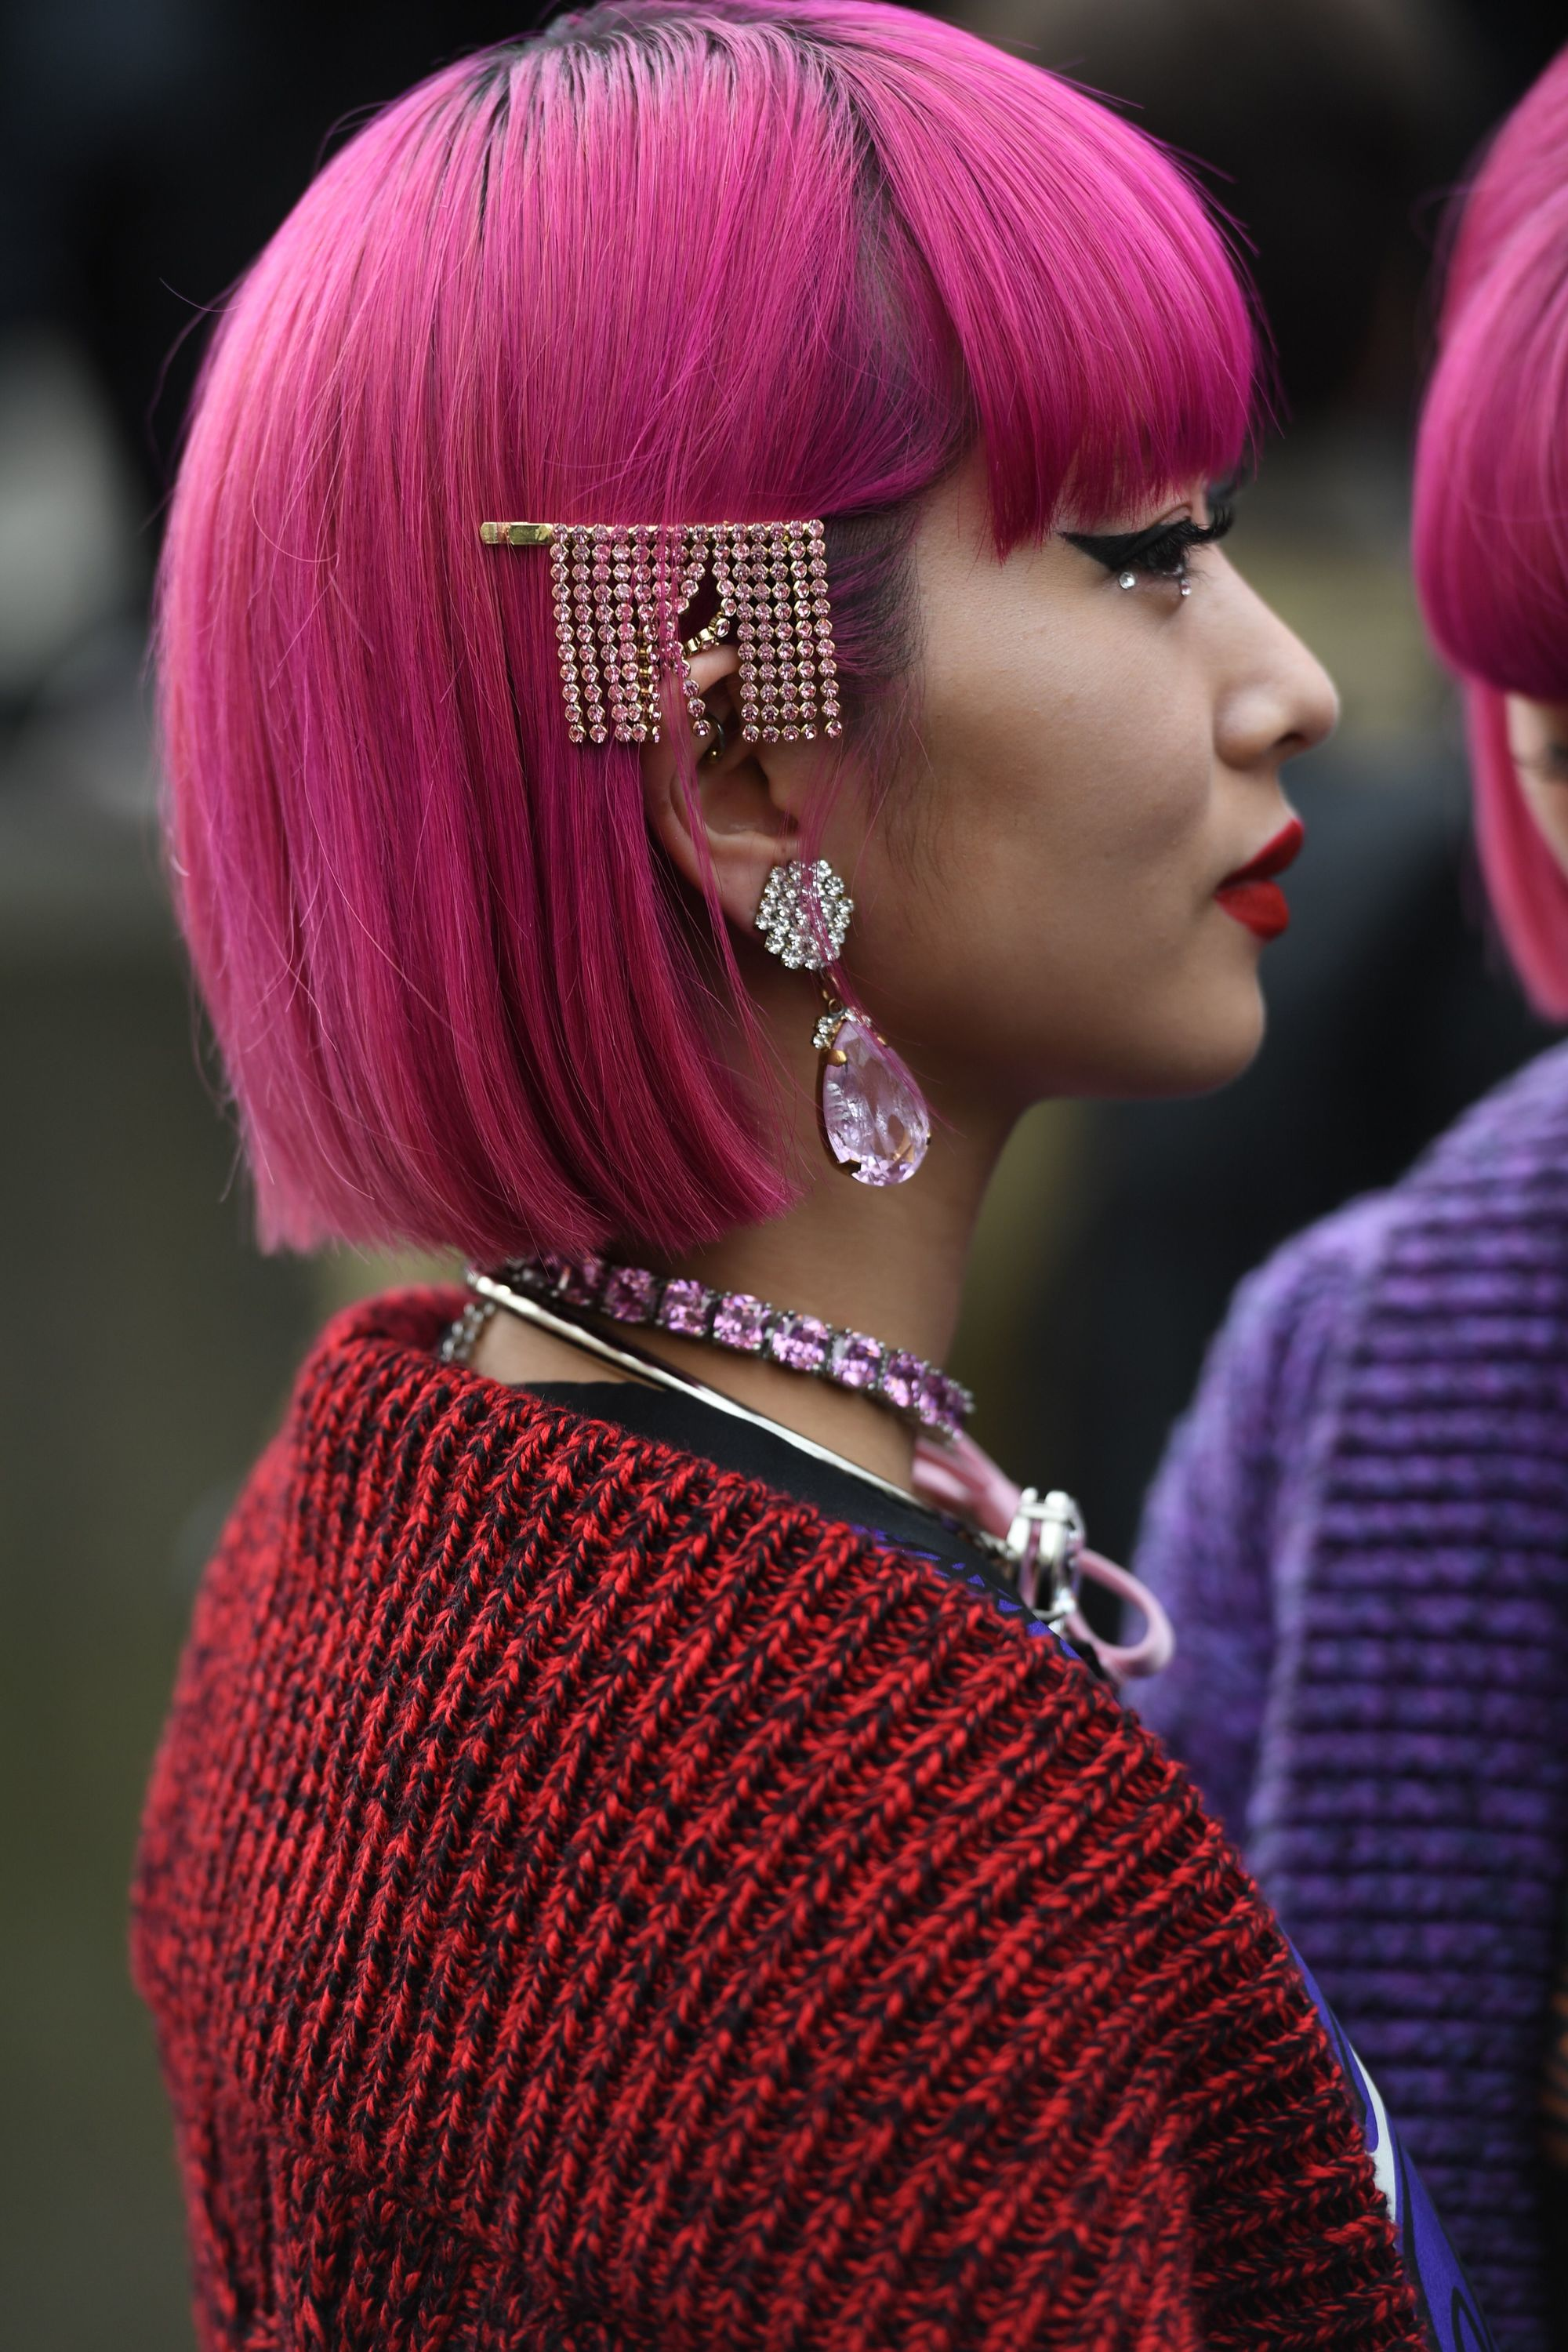 Diamante hair trend: Side photo of a woman with a pink bob wearing a dangling diamante hair slide